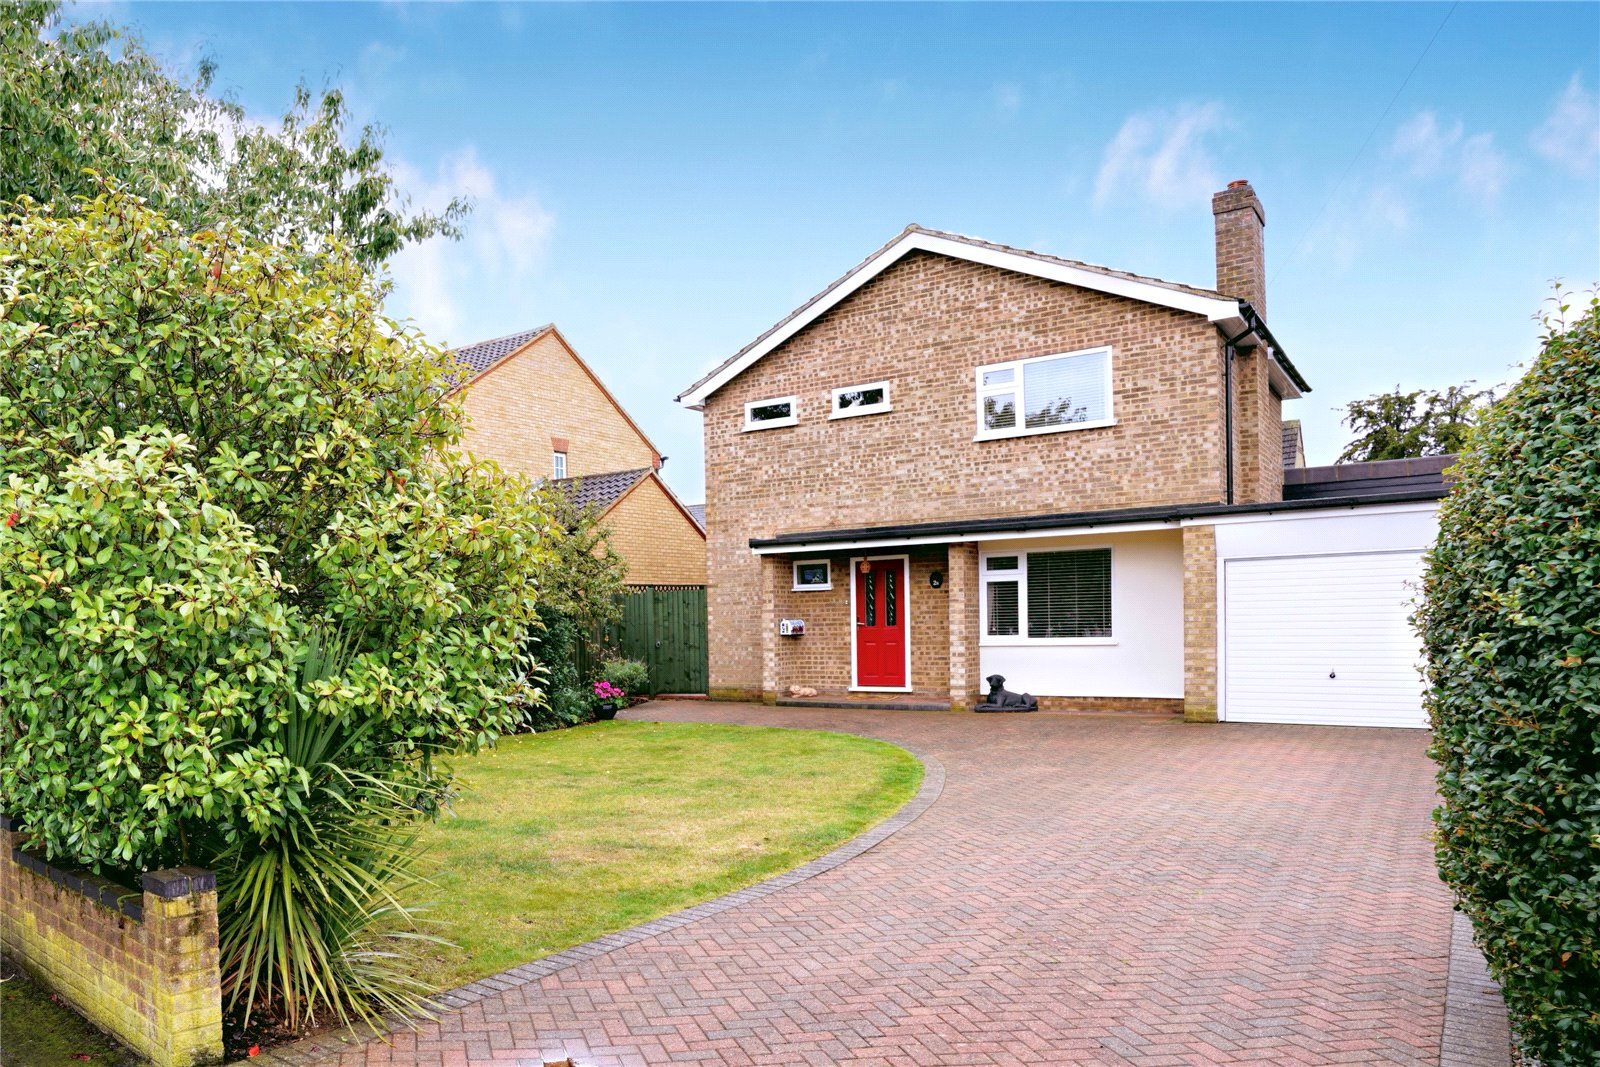 3 bed house for sale in Windsor Way, Sandy  - Property Image 1